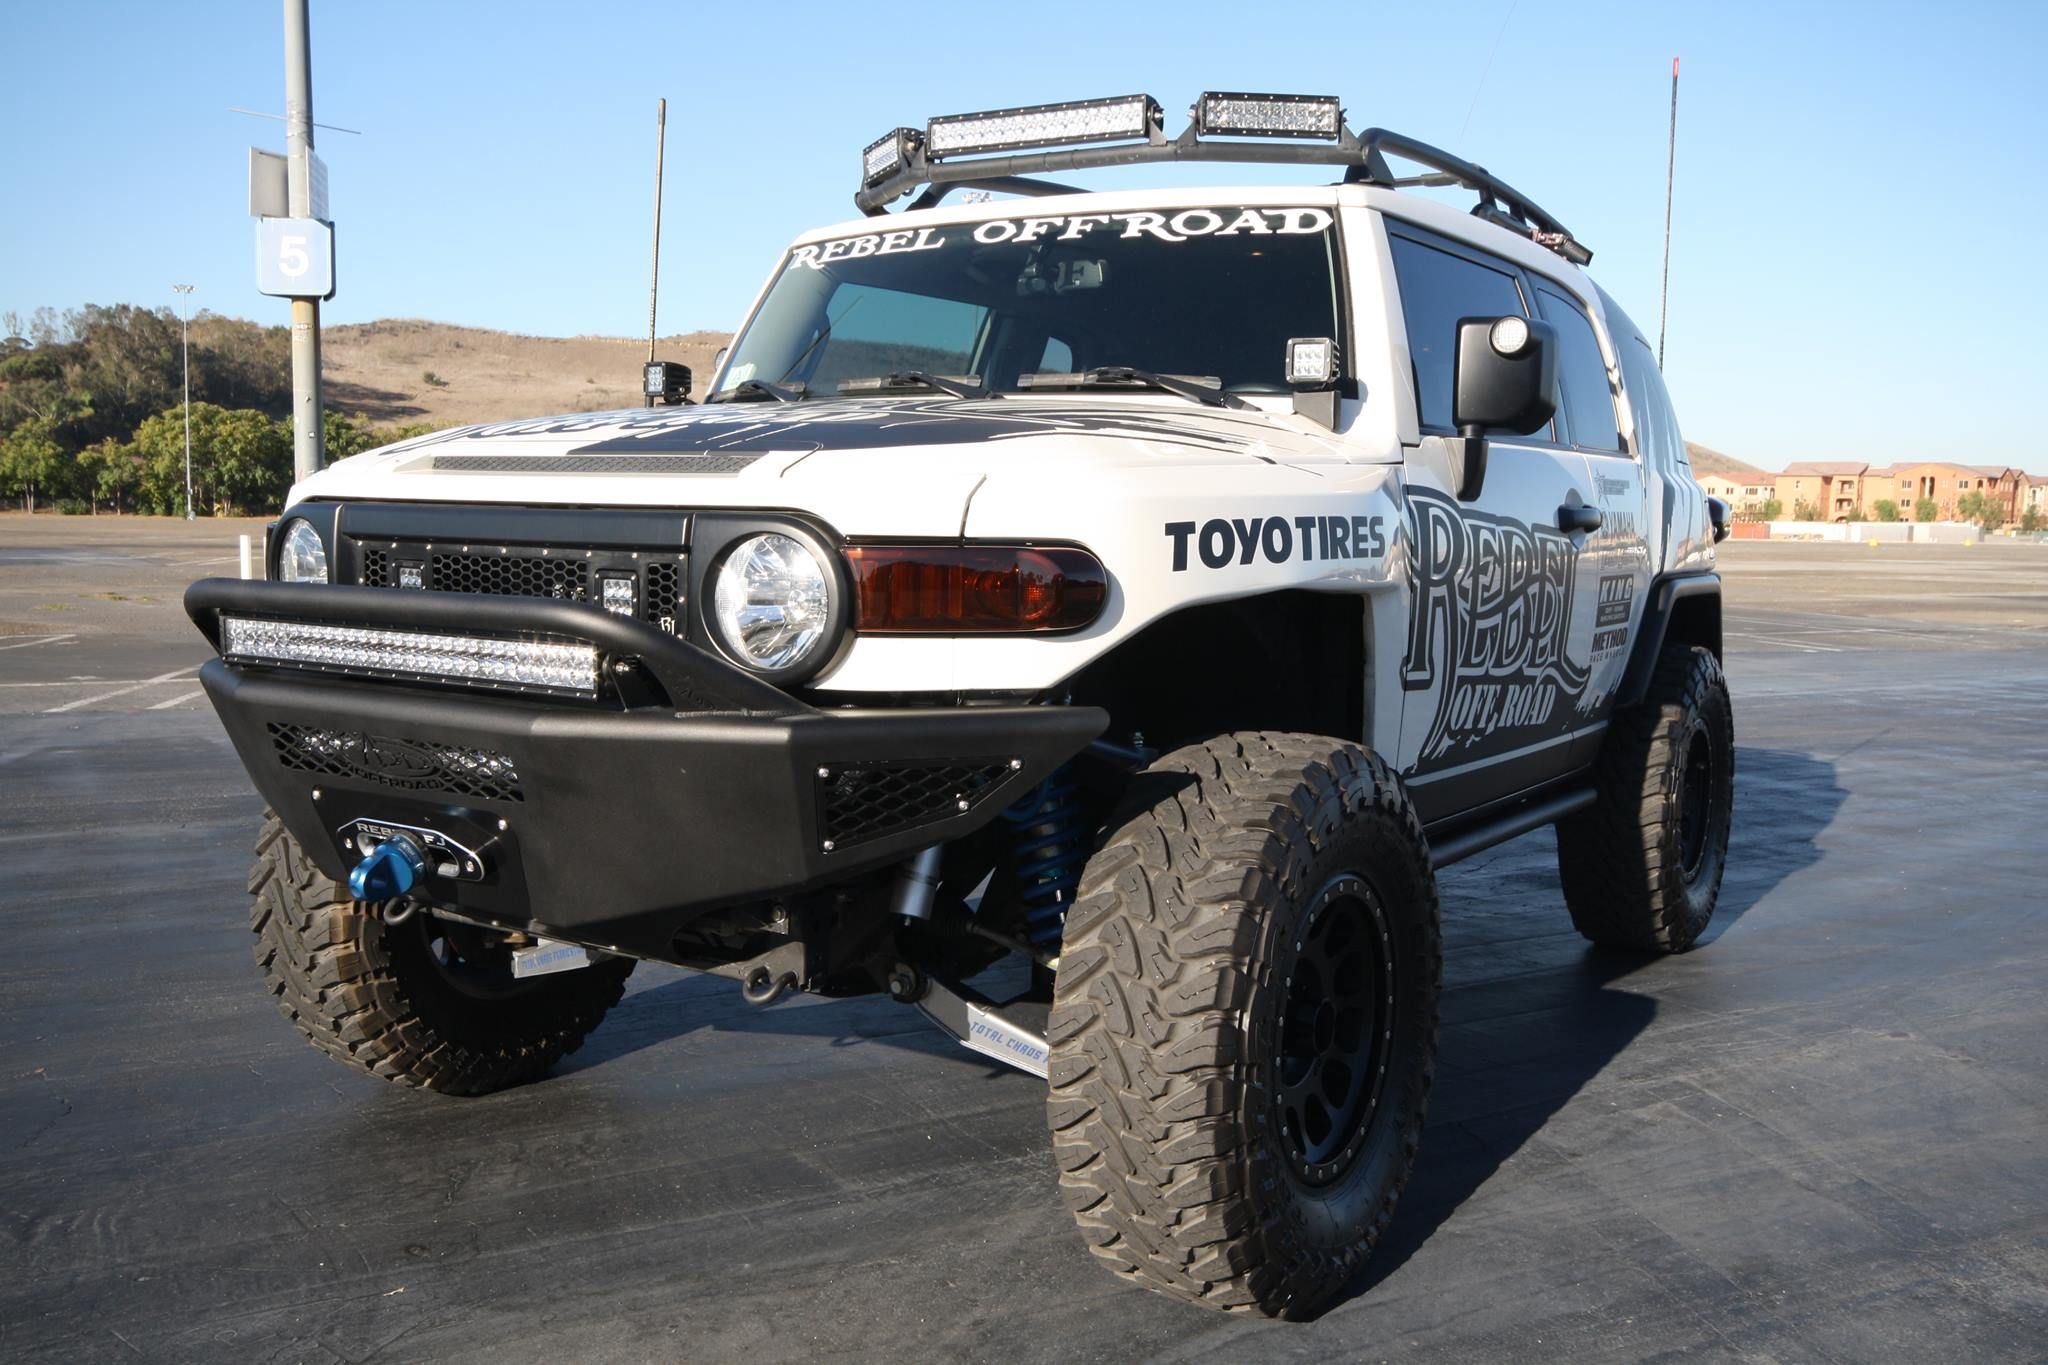 One of our dealers Rebel Offroad with the Toyota FJ Cruiser